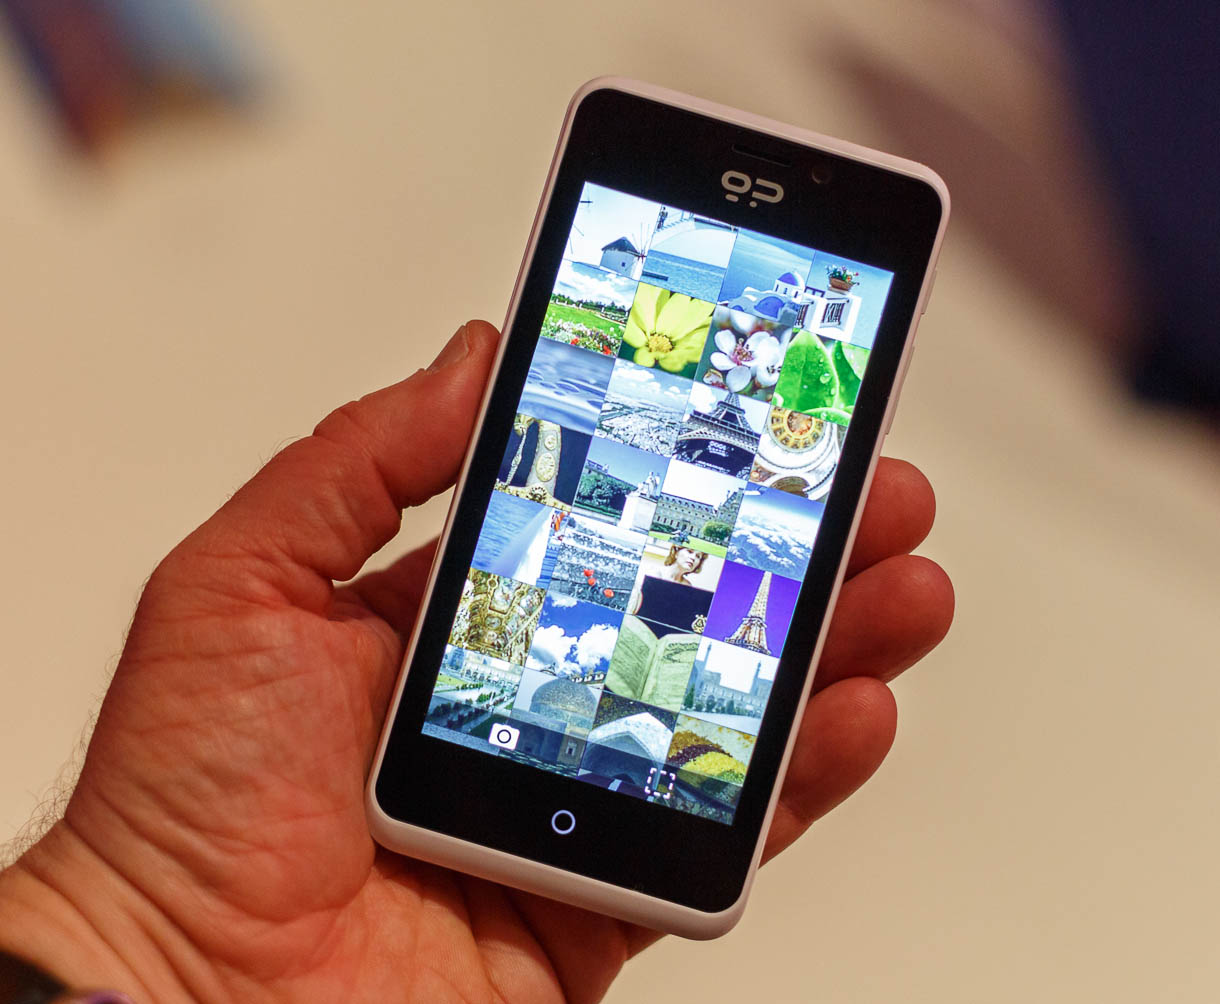 The gallery app on Firefox OS presents photos as an array of thumbnails that scrolls vertically.